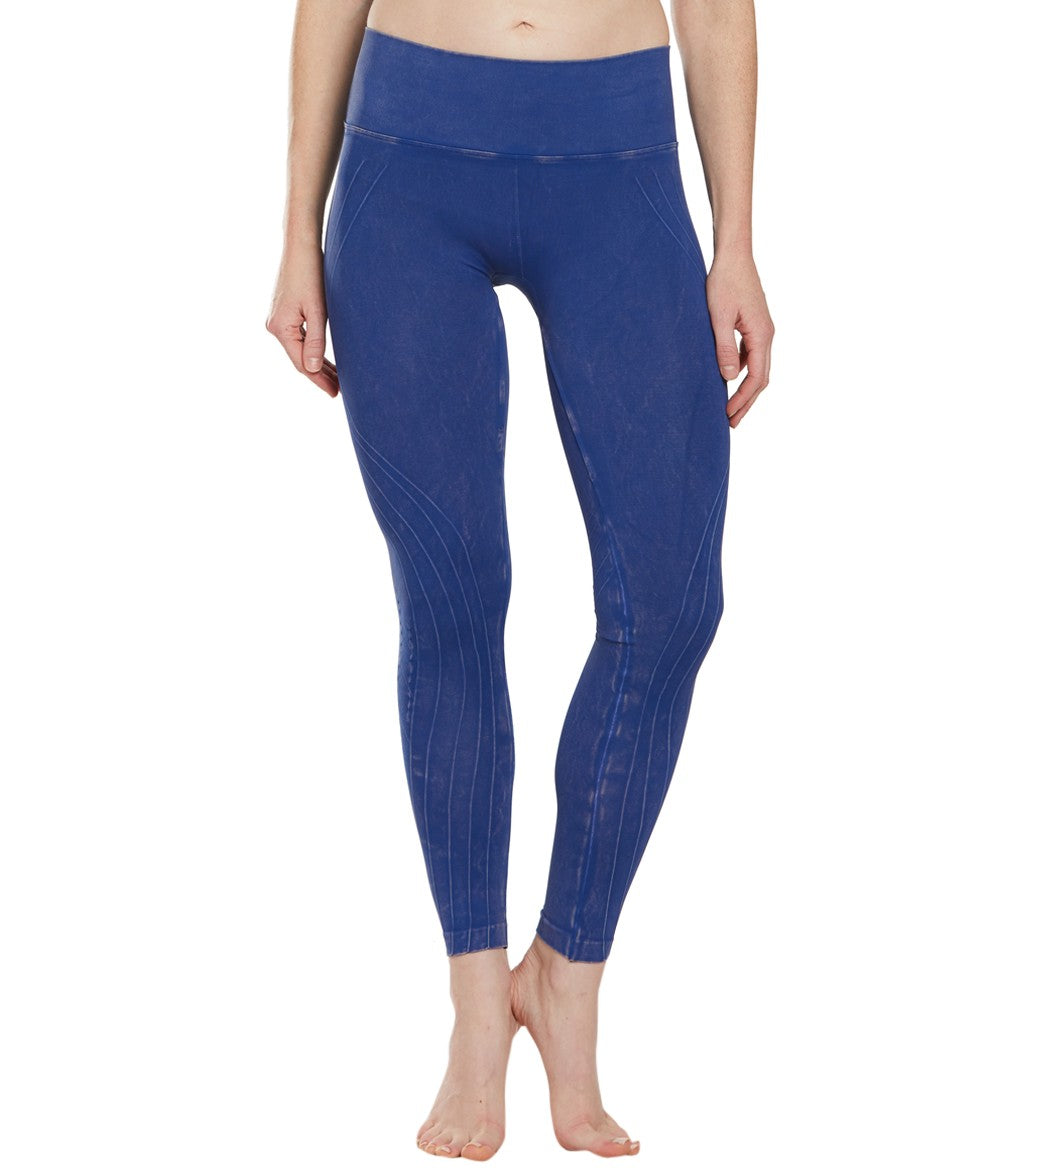 2b99f6de4a2d13 NUX Mesa Mineral Wash Seamless Yoga Leggings at YogaOutlet.com - Free  Shipping